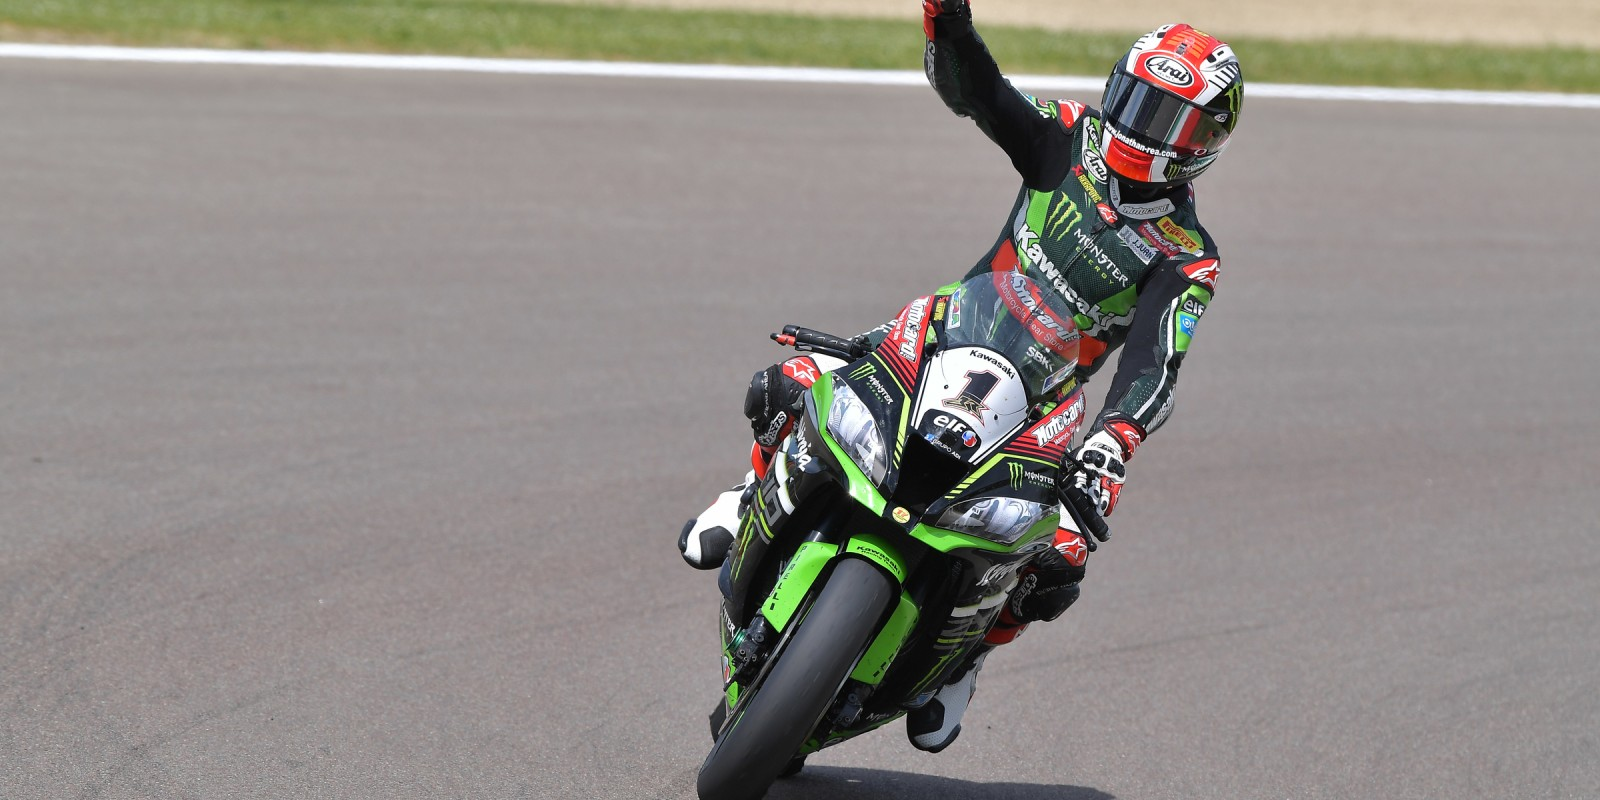 Jonathan Rea in action at Imola for the fourth round of 2016 WorldSBK